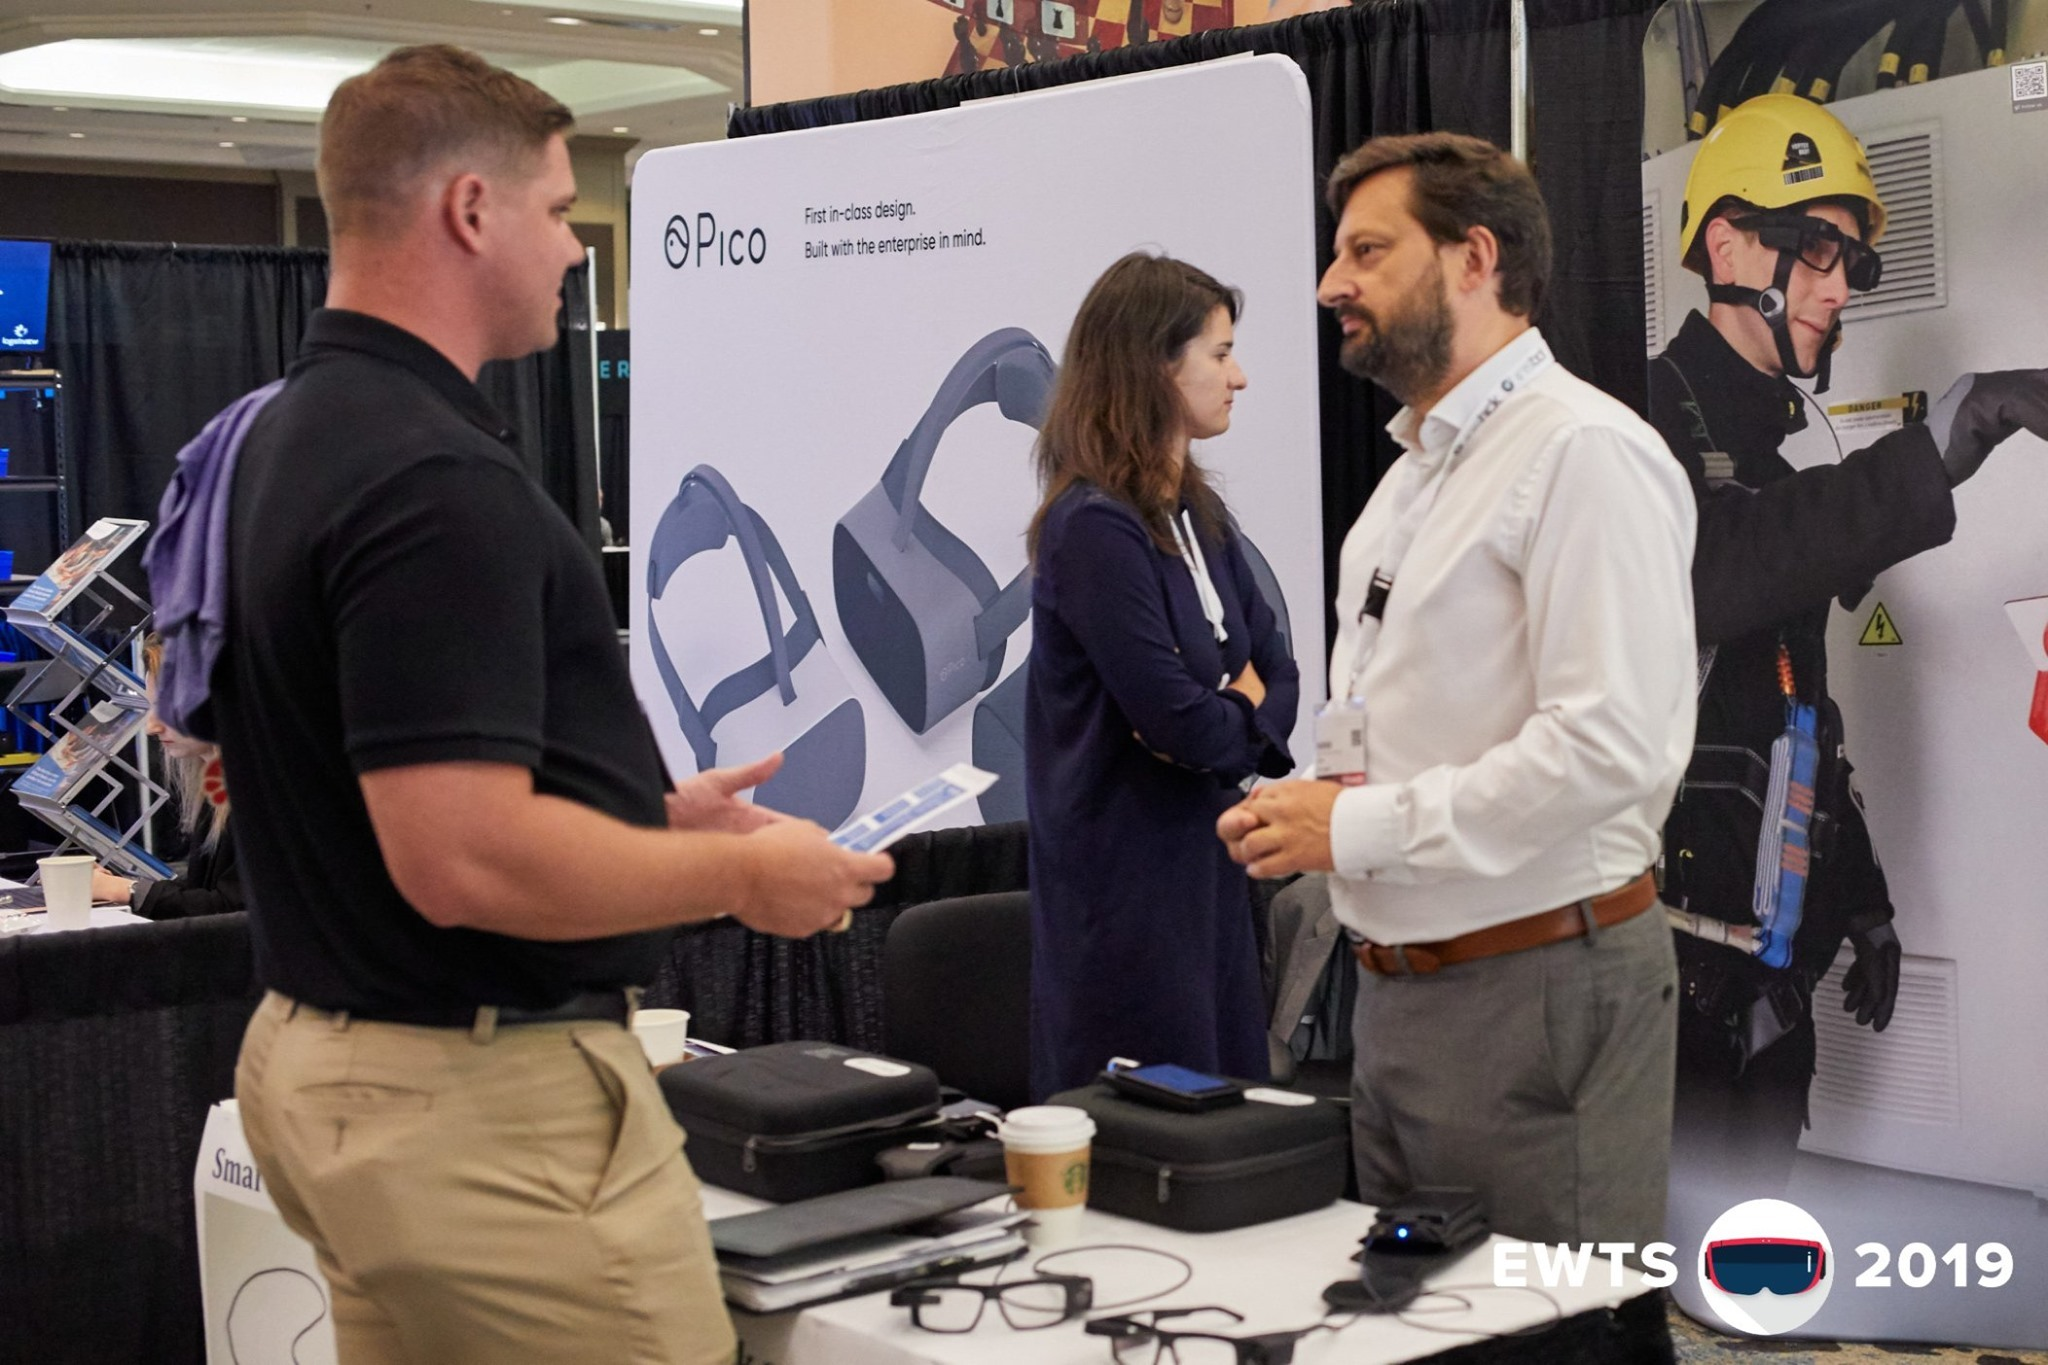 Iristick was a proud exhibitor of EWTS2019